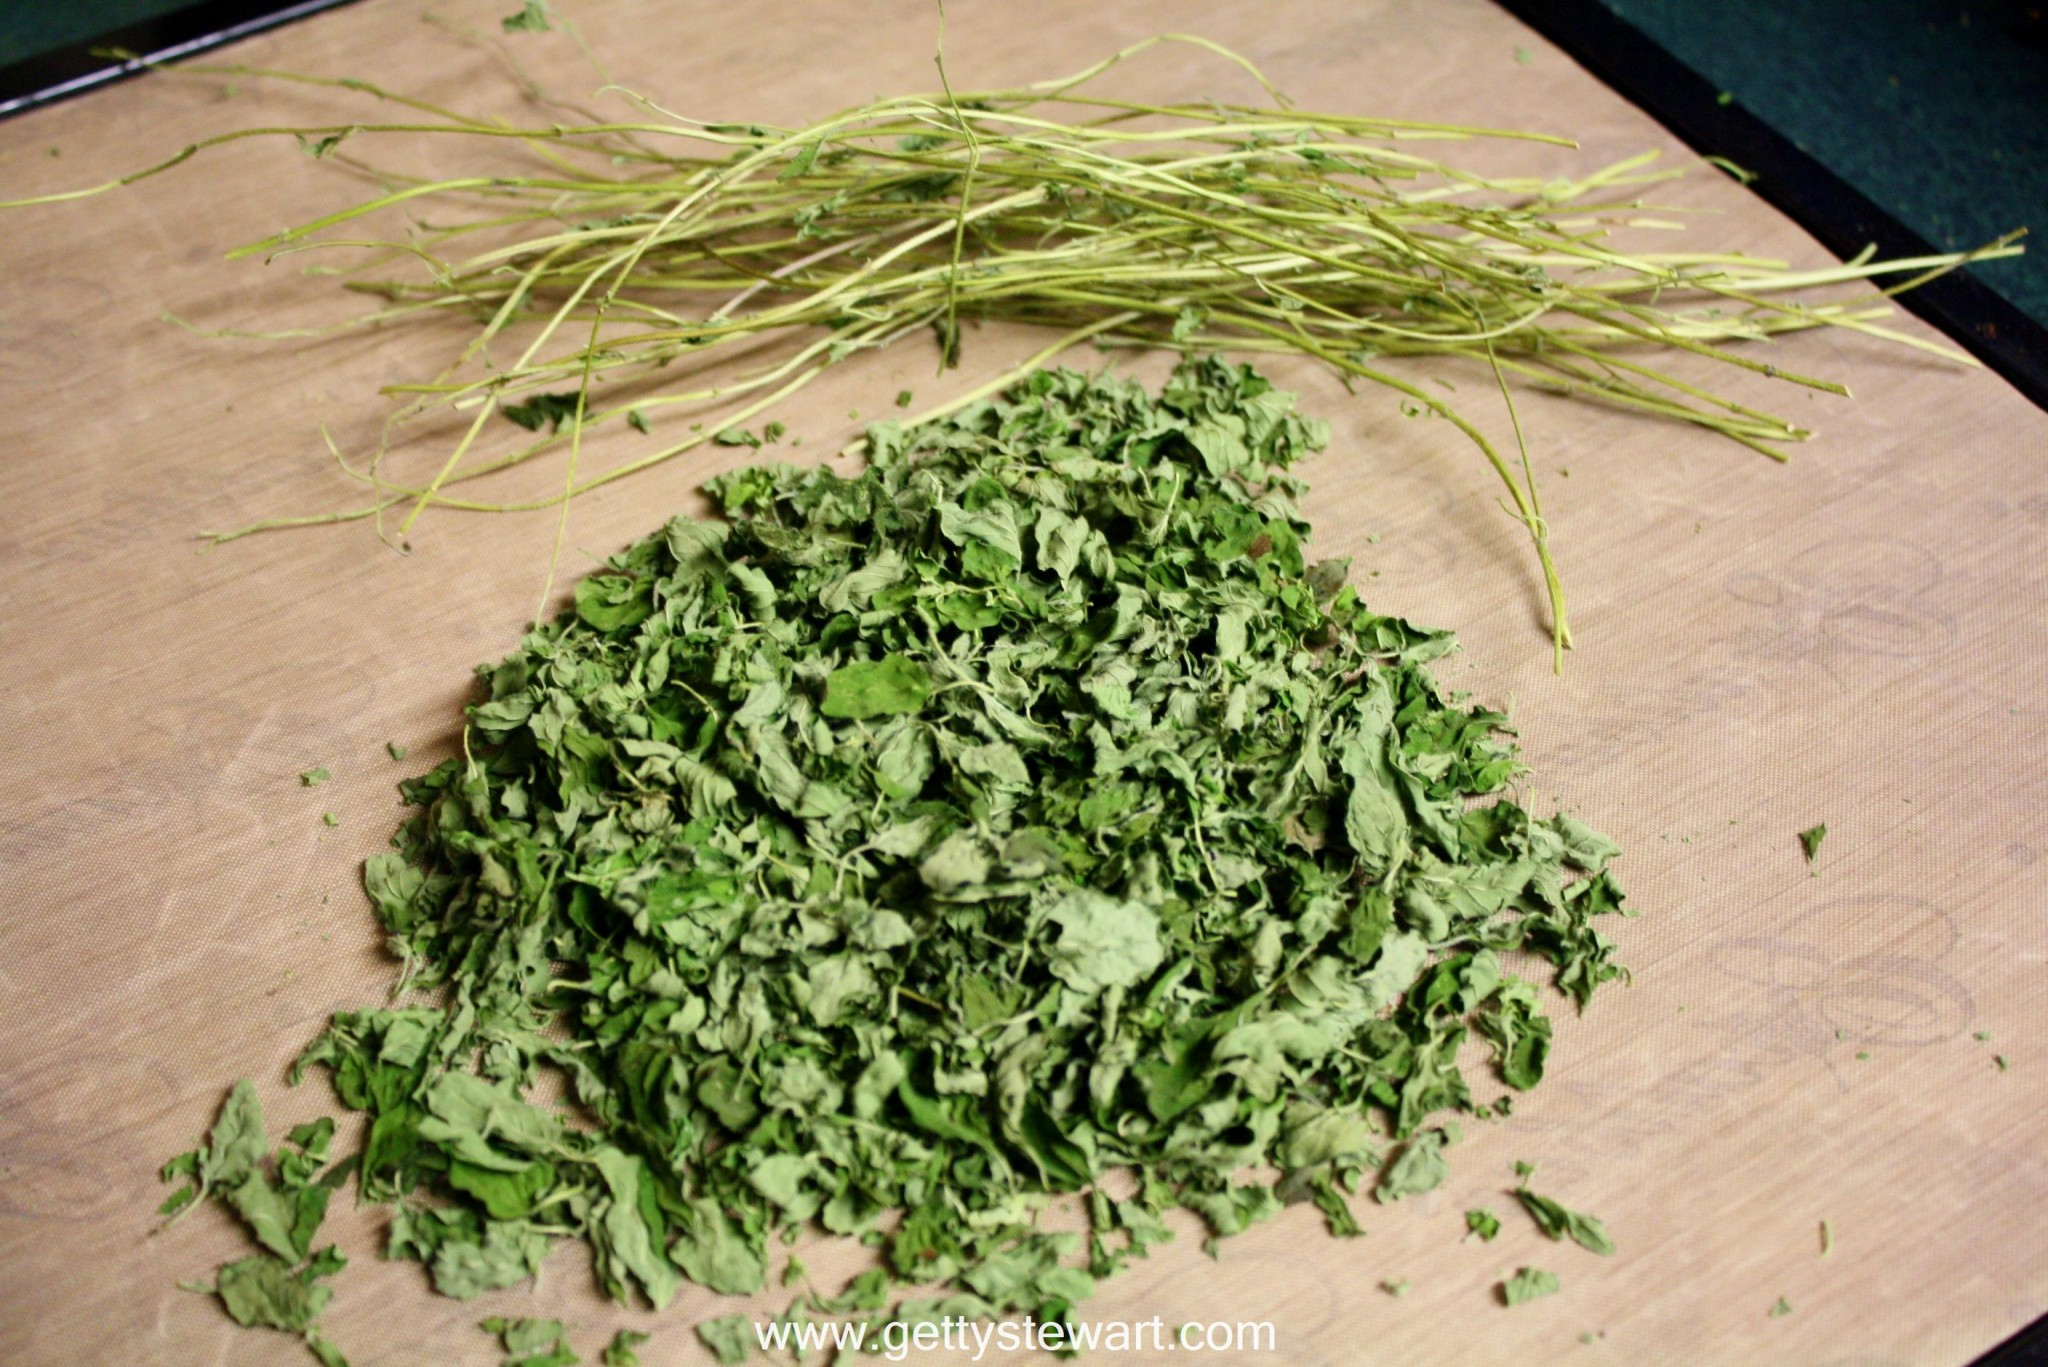 How to Dry and Use Oregano